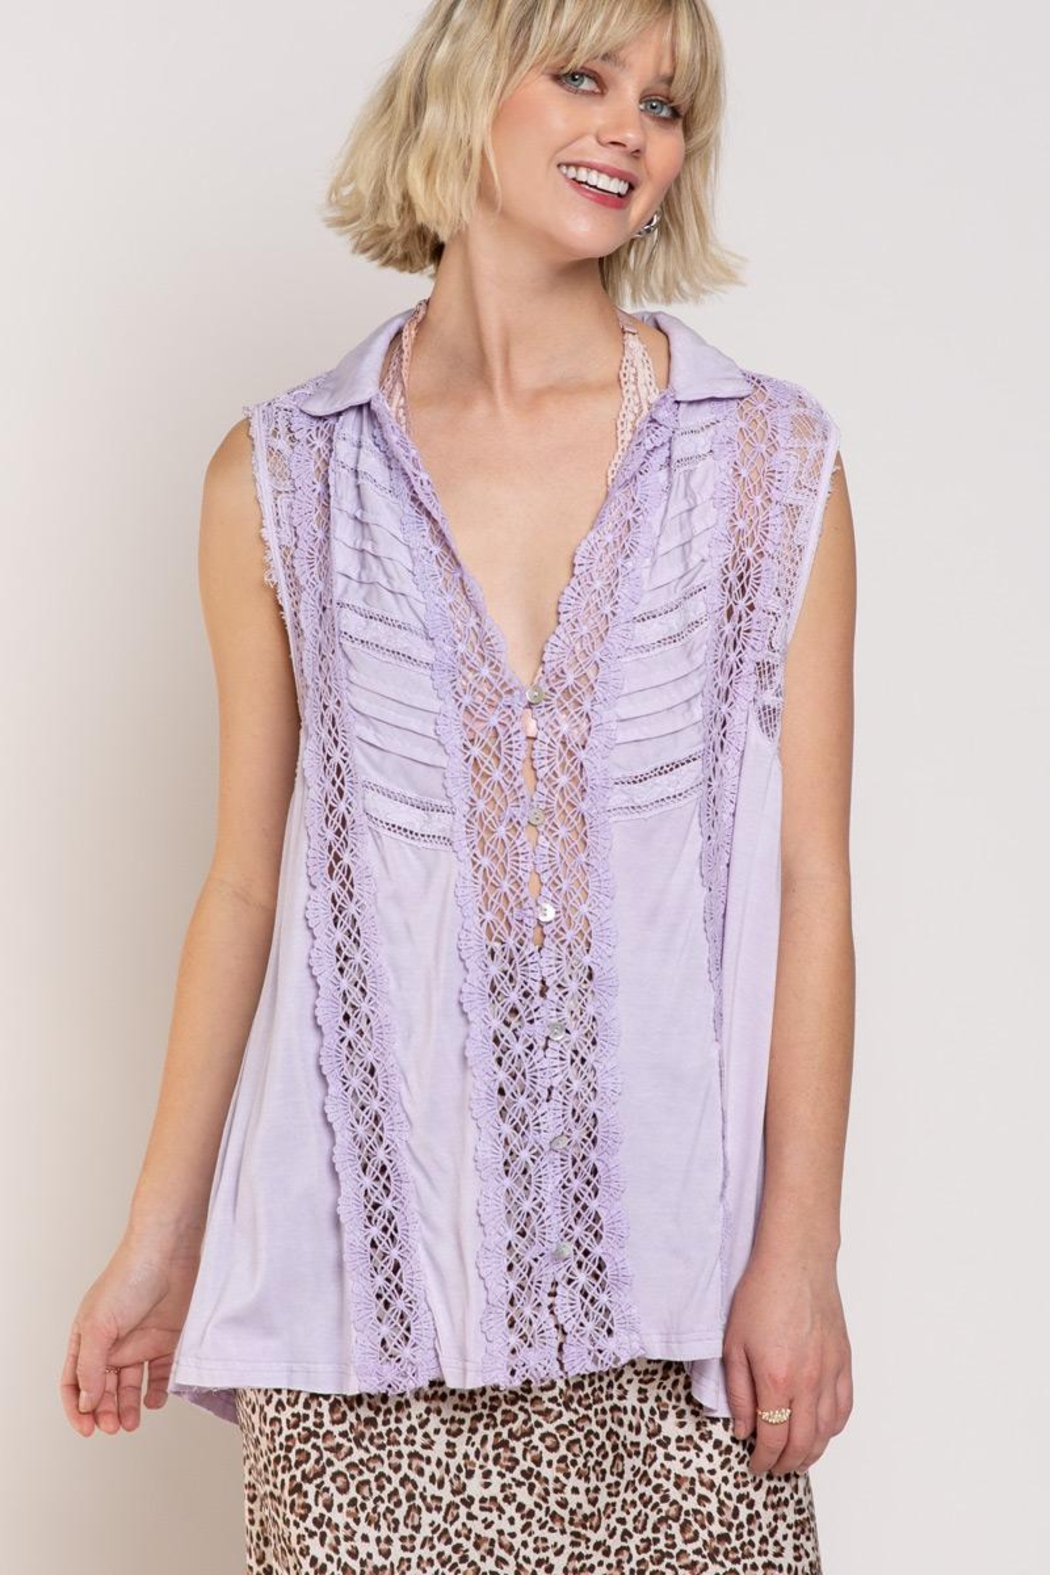 POL Relaxed Sleeveless Woven Top - Main Image